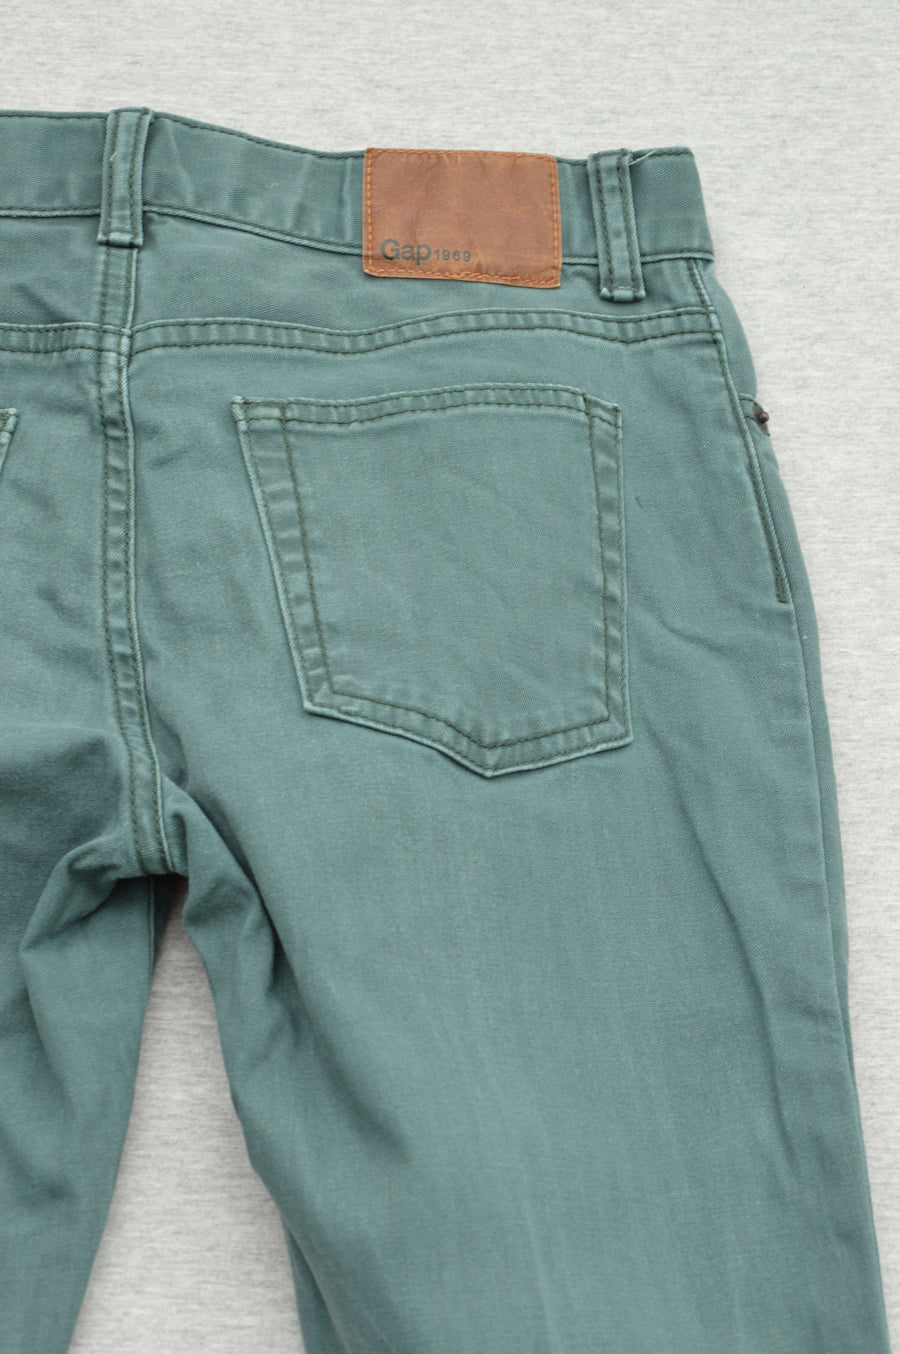 Gap green herringbone straight leg jeans, size 10